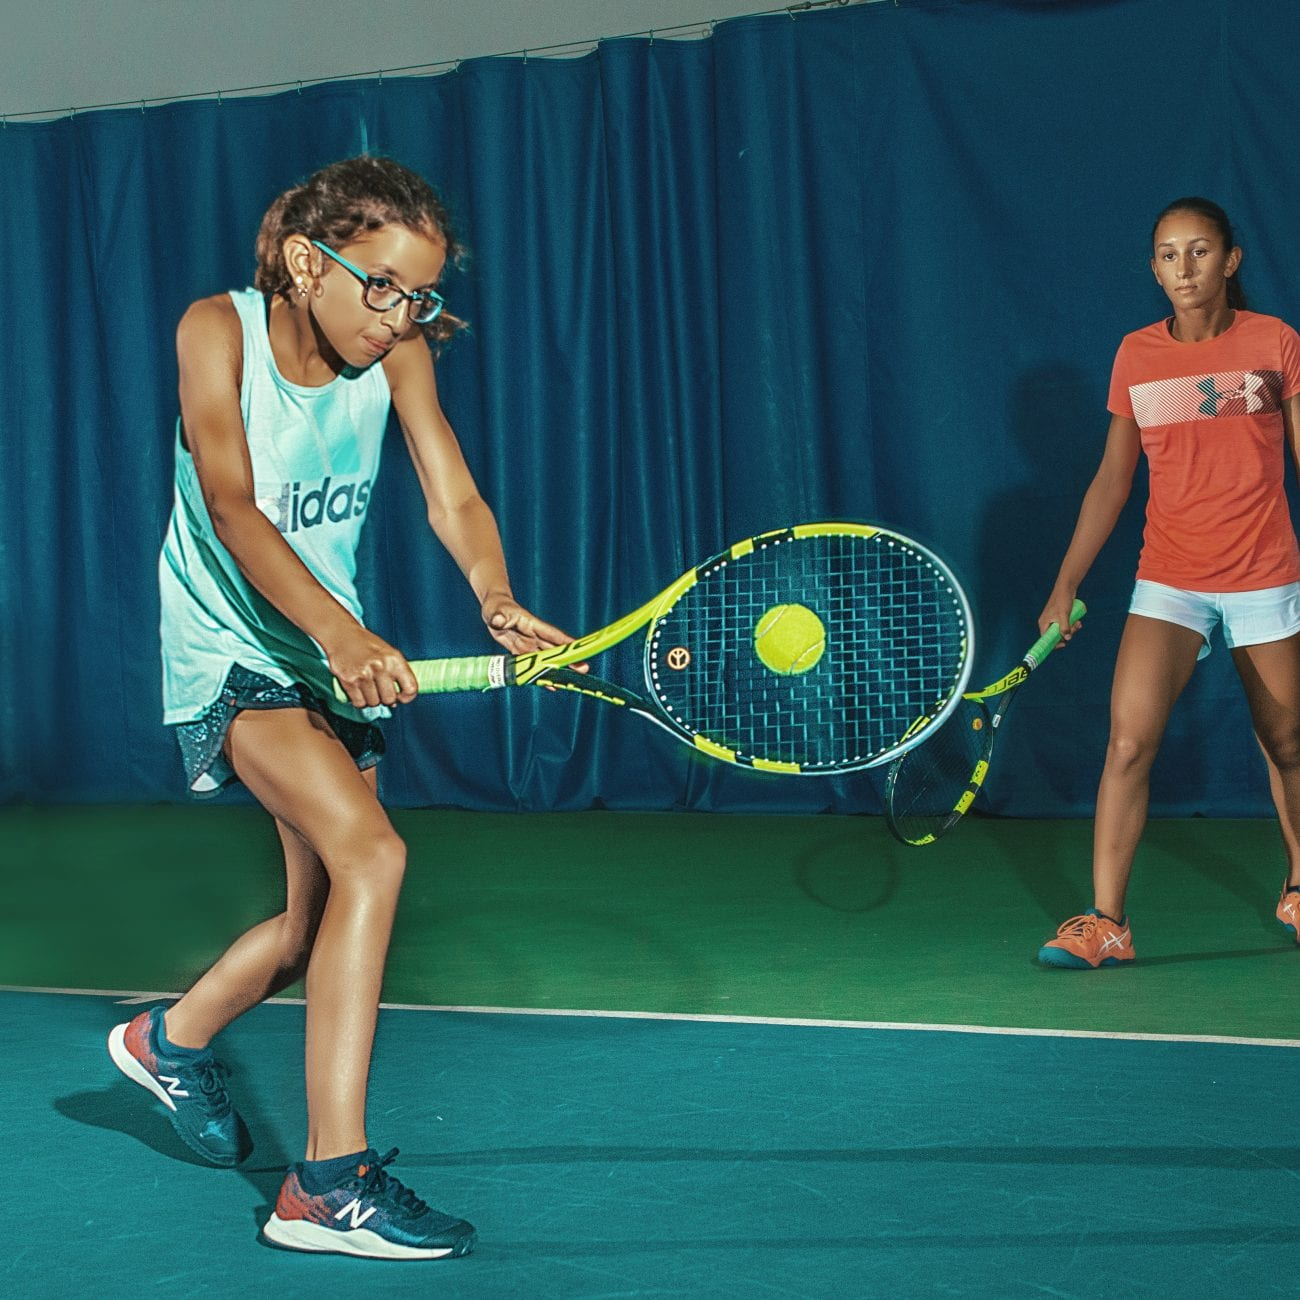 Tennis lessons for kids in Cherry Hill